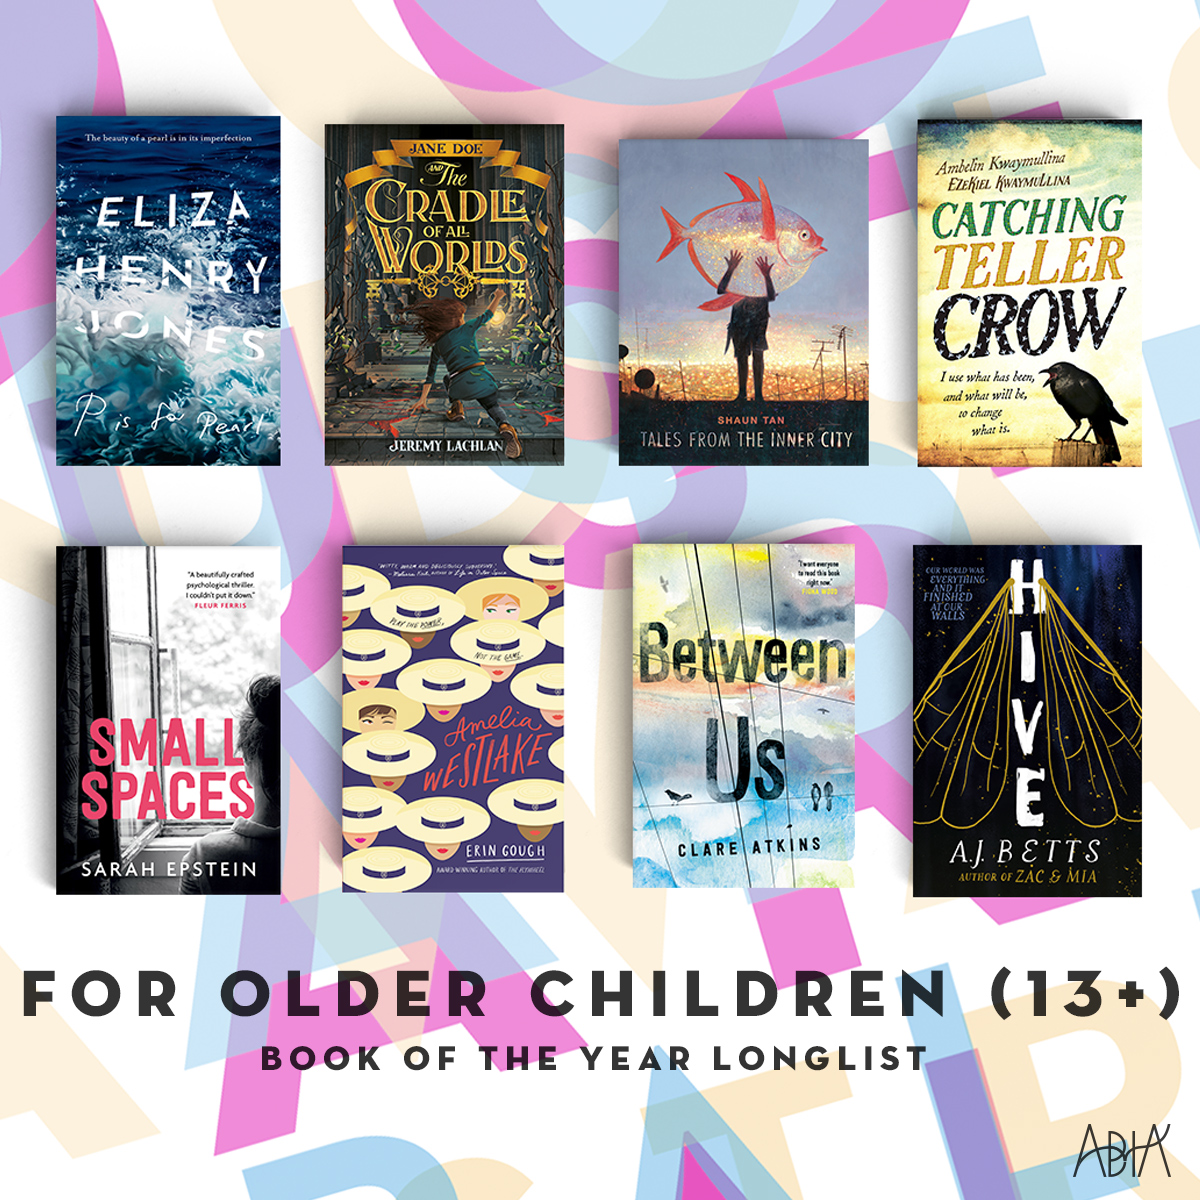 BOOK OF THE YEAR FOR OLDER CHILDREN (AGES 13+):    Amelia Westlake , Erin Gough (Hardie Grant Egmont, Hardie Grant Egmont)   Between Us , Clare Atkins (Black Inc. Books, Black Inc.)   Catching Teller Crow , Ambelin Kwaymullina and Ezekiel Kwaymullina (Allen & Unwin, Allen & Unwin)   Hive , A. J. Betts (Pan Macmillan Australia, Pan Australia)   Jane Doe and the Cradle of All Worlds,  Jeremy Lachlan(Hardie Grant Egmont, Hardie Grant Egmont)   P is for Pearl,  Eliza Henry-Jones (HarperCollins Publishers, Angus & Robertson)   Small Spaces , Sarah Epstein (Walker Books Australia, Walker Books Australia)   Tales from the Inner City,  Shaun Tan (Allen & Unwin, Allen & Unwin)